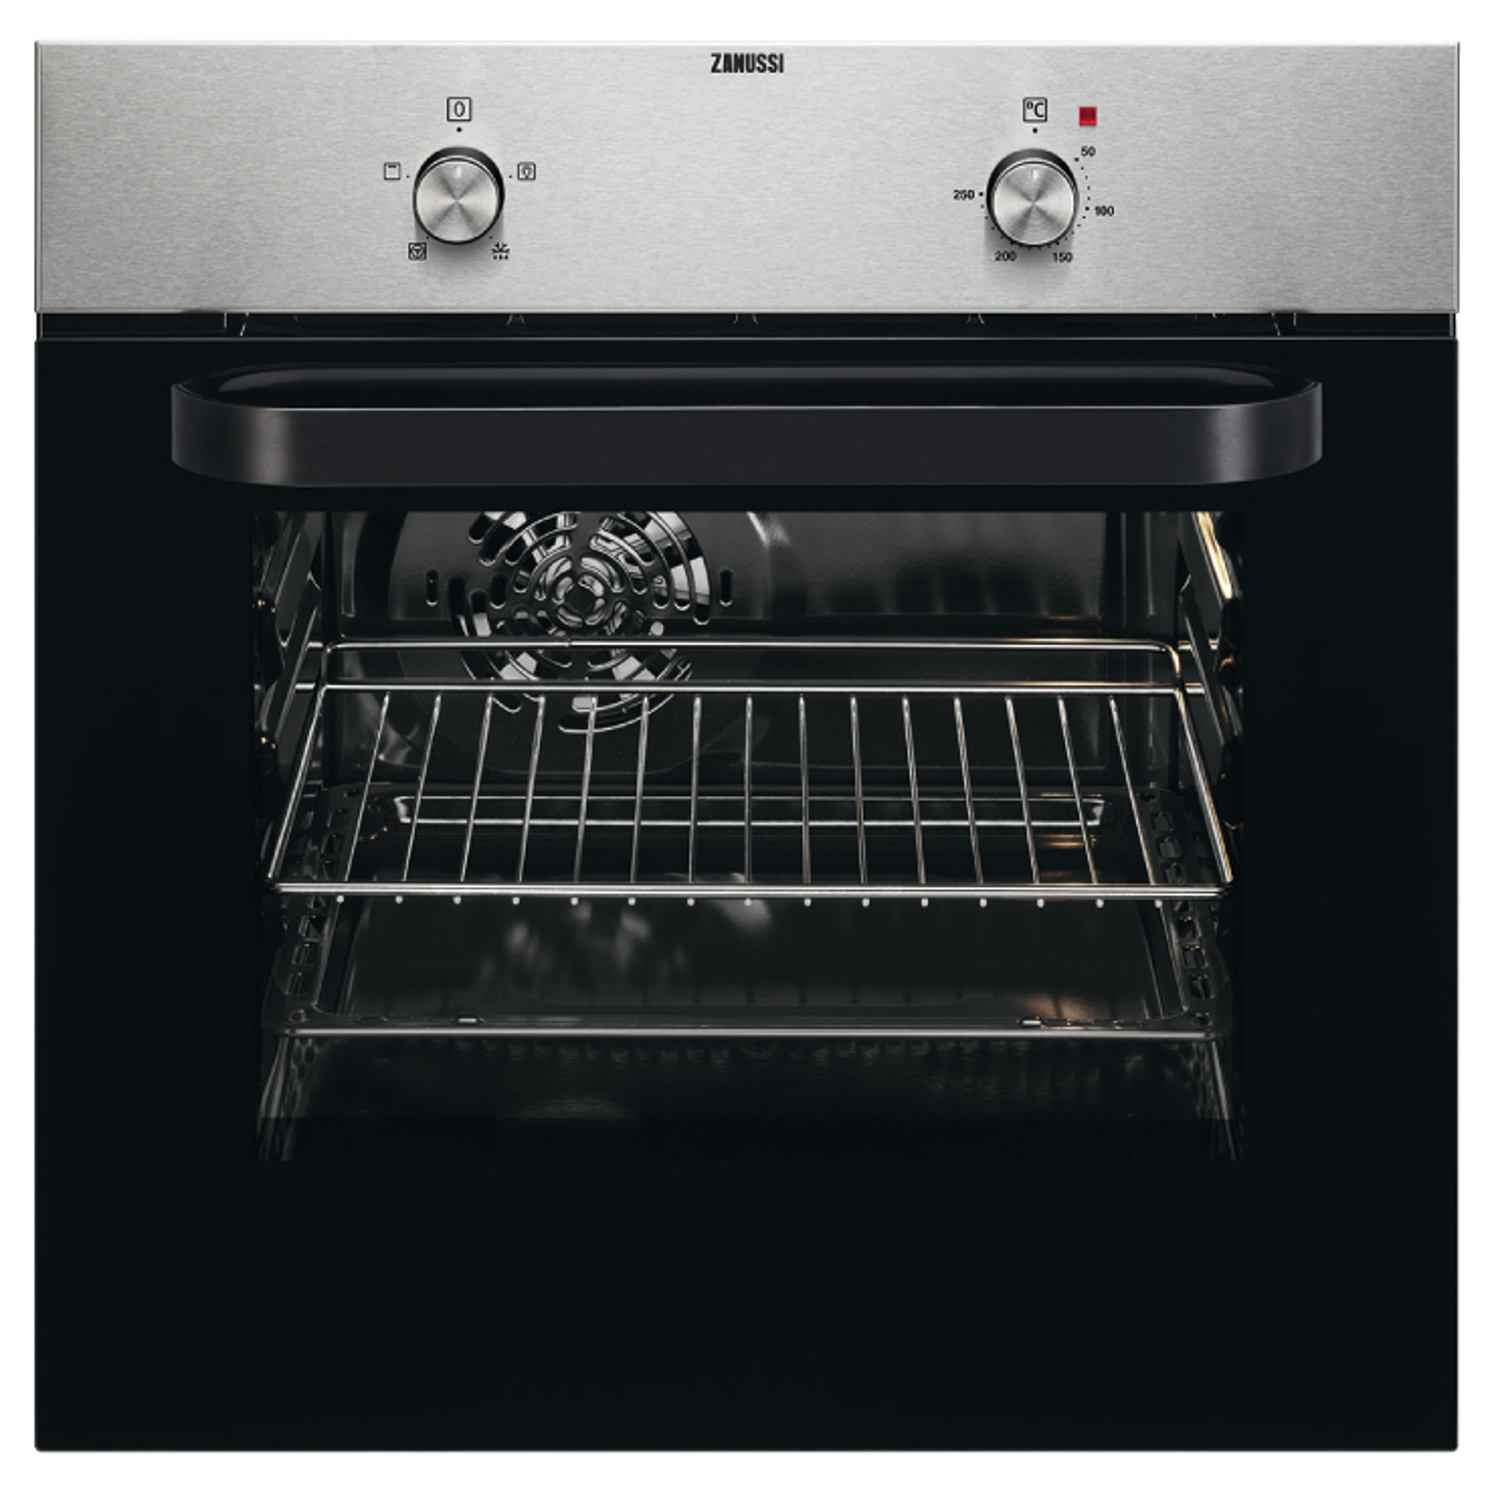 Zanussi Built In Electric Single Oven - Stainless Steel - A Rated - 0